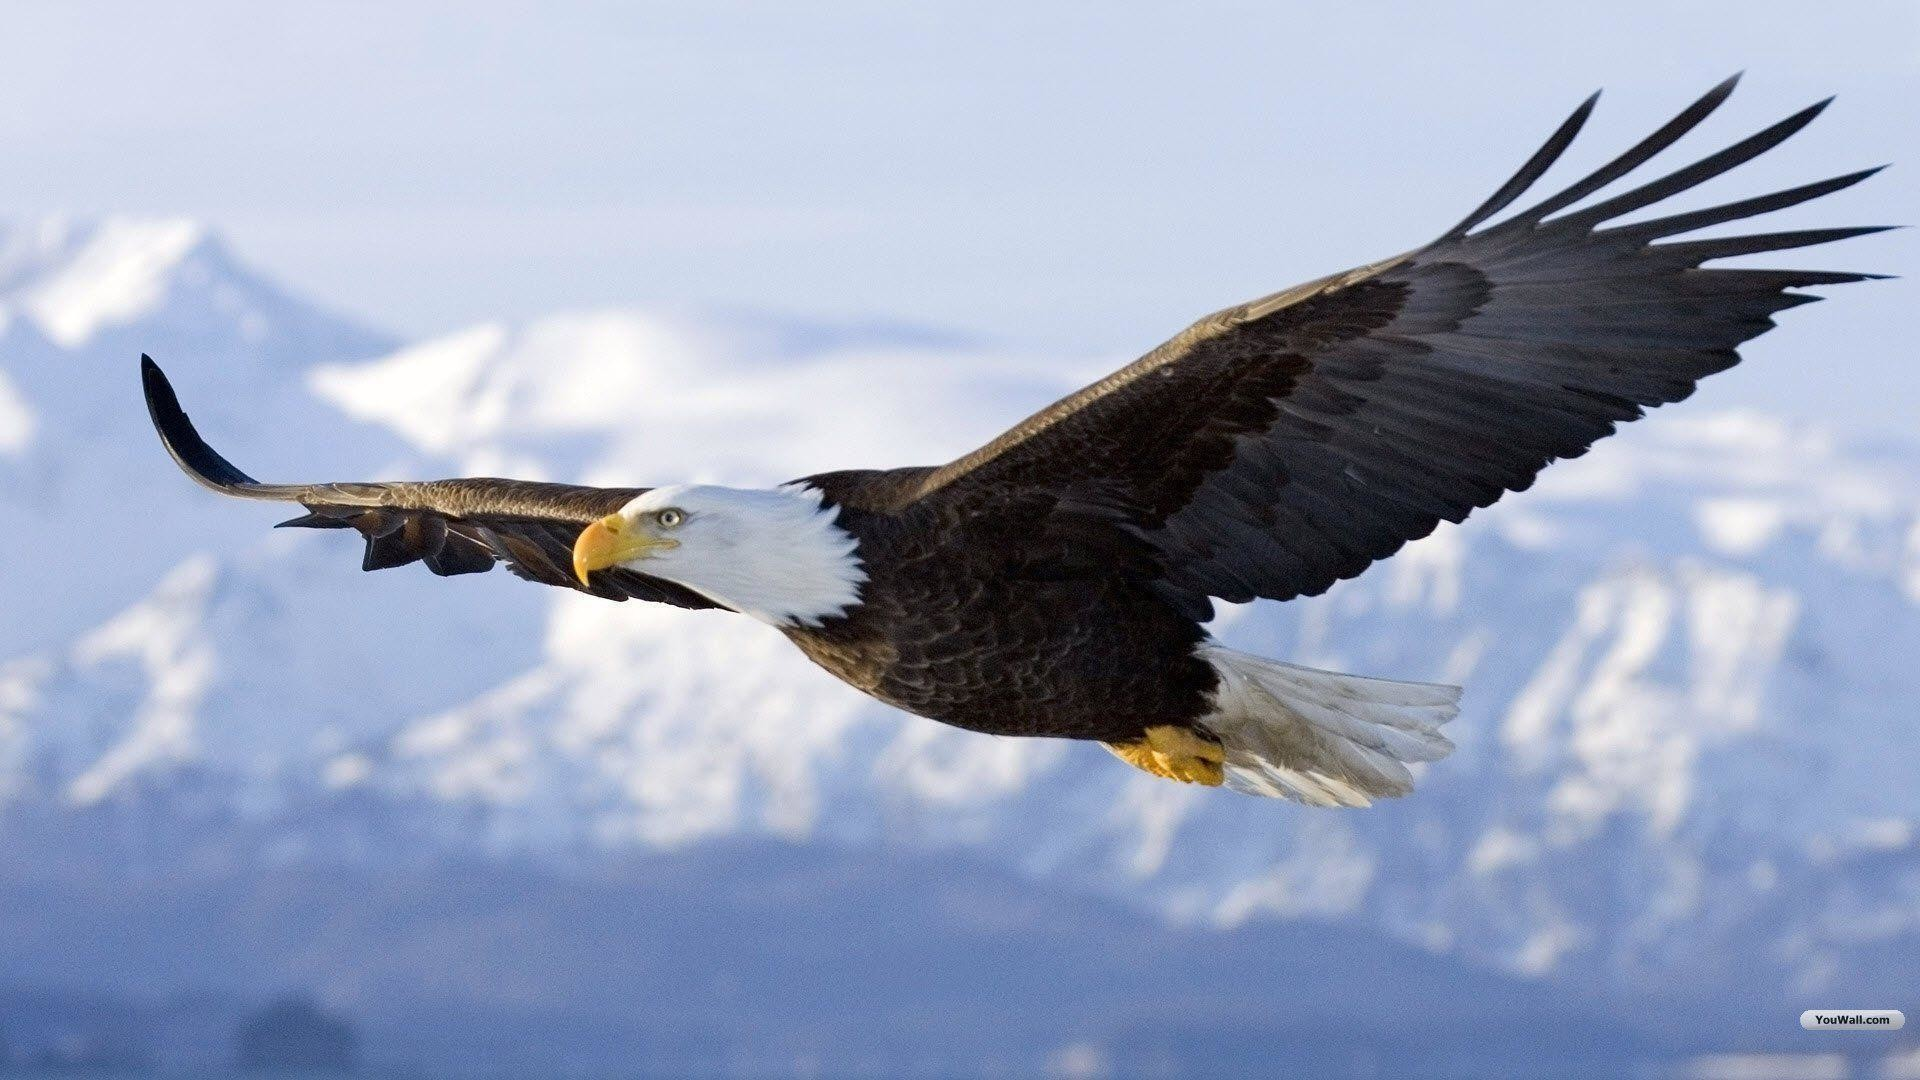 Eagle Wallpapers 68 Images